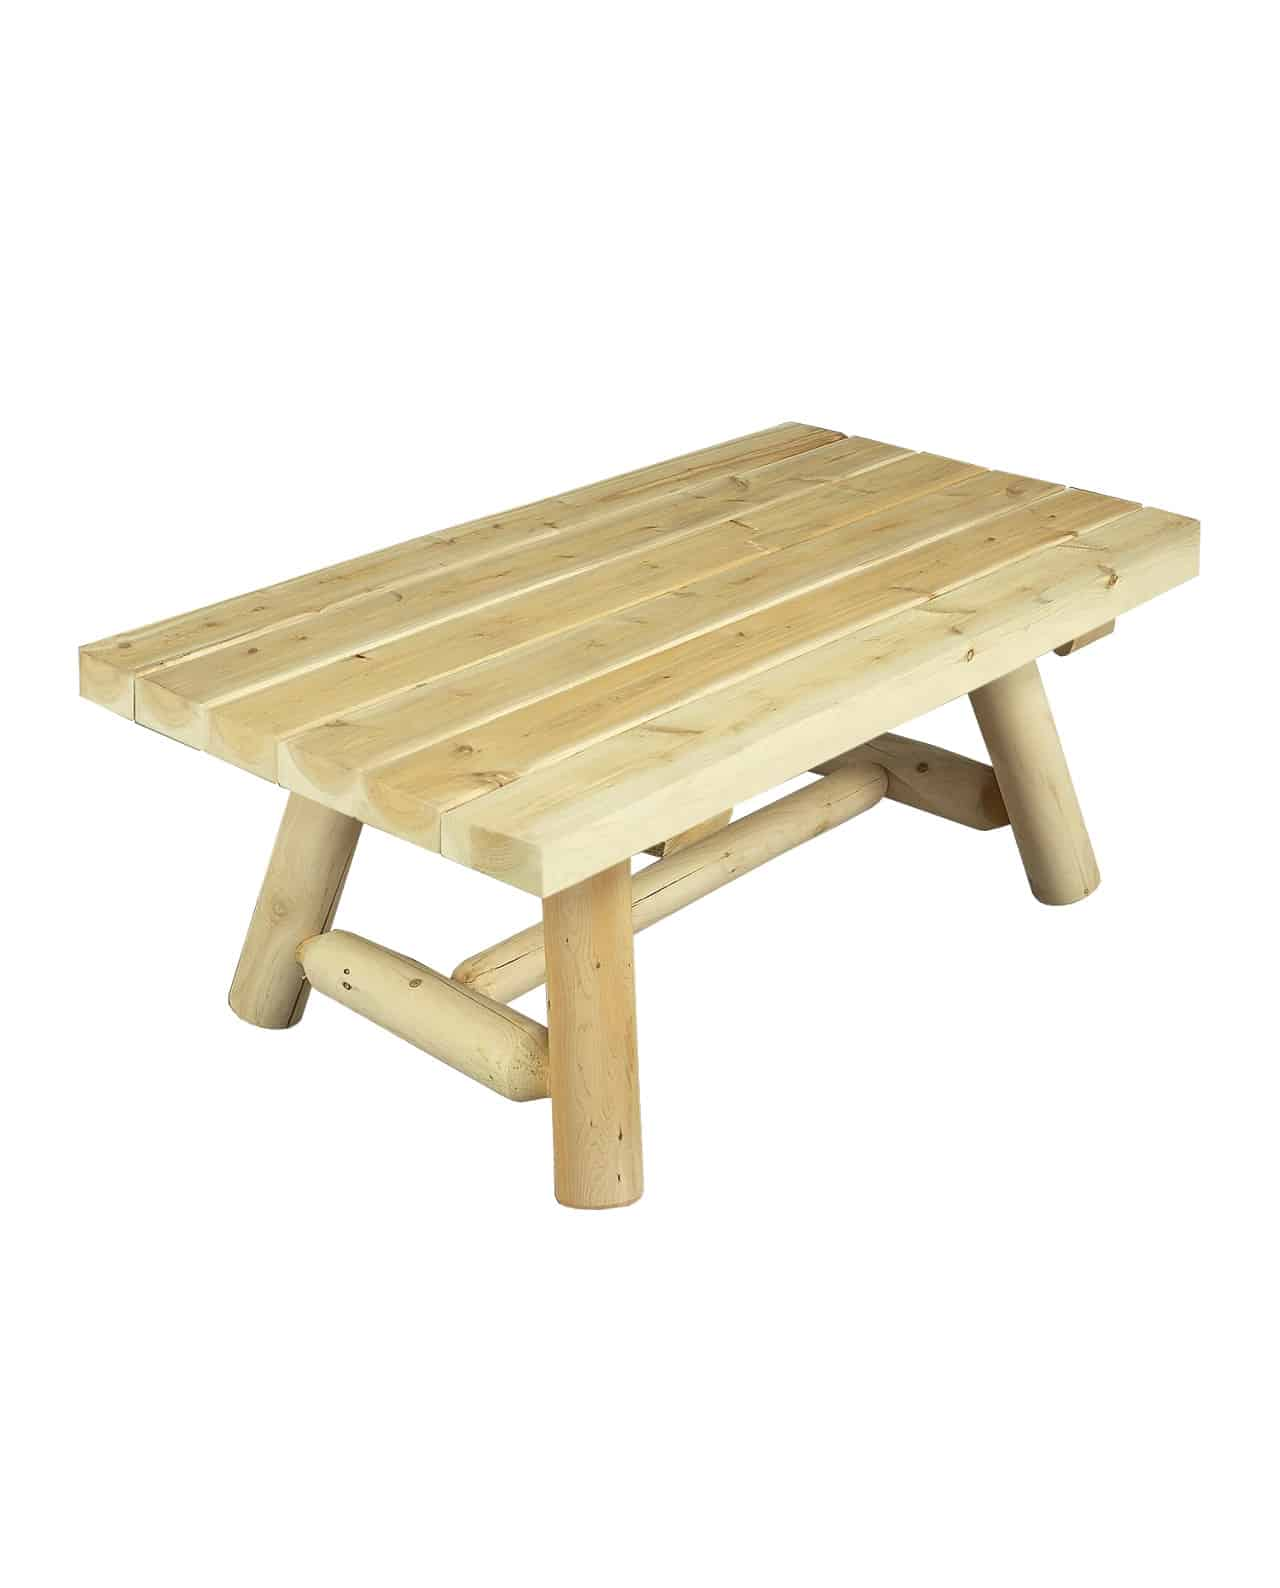 Table de Salon Rectangulaire en Bois de C u00e8dre blanc C u00e8dre et Rondins # Table Rectangulaire Bois